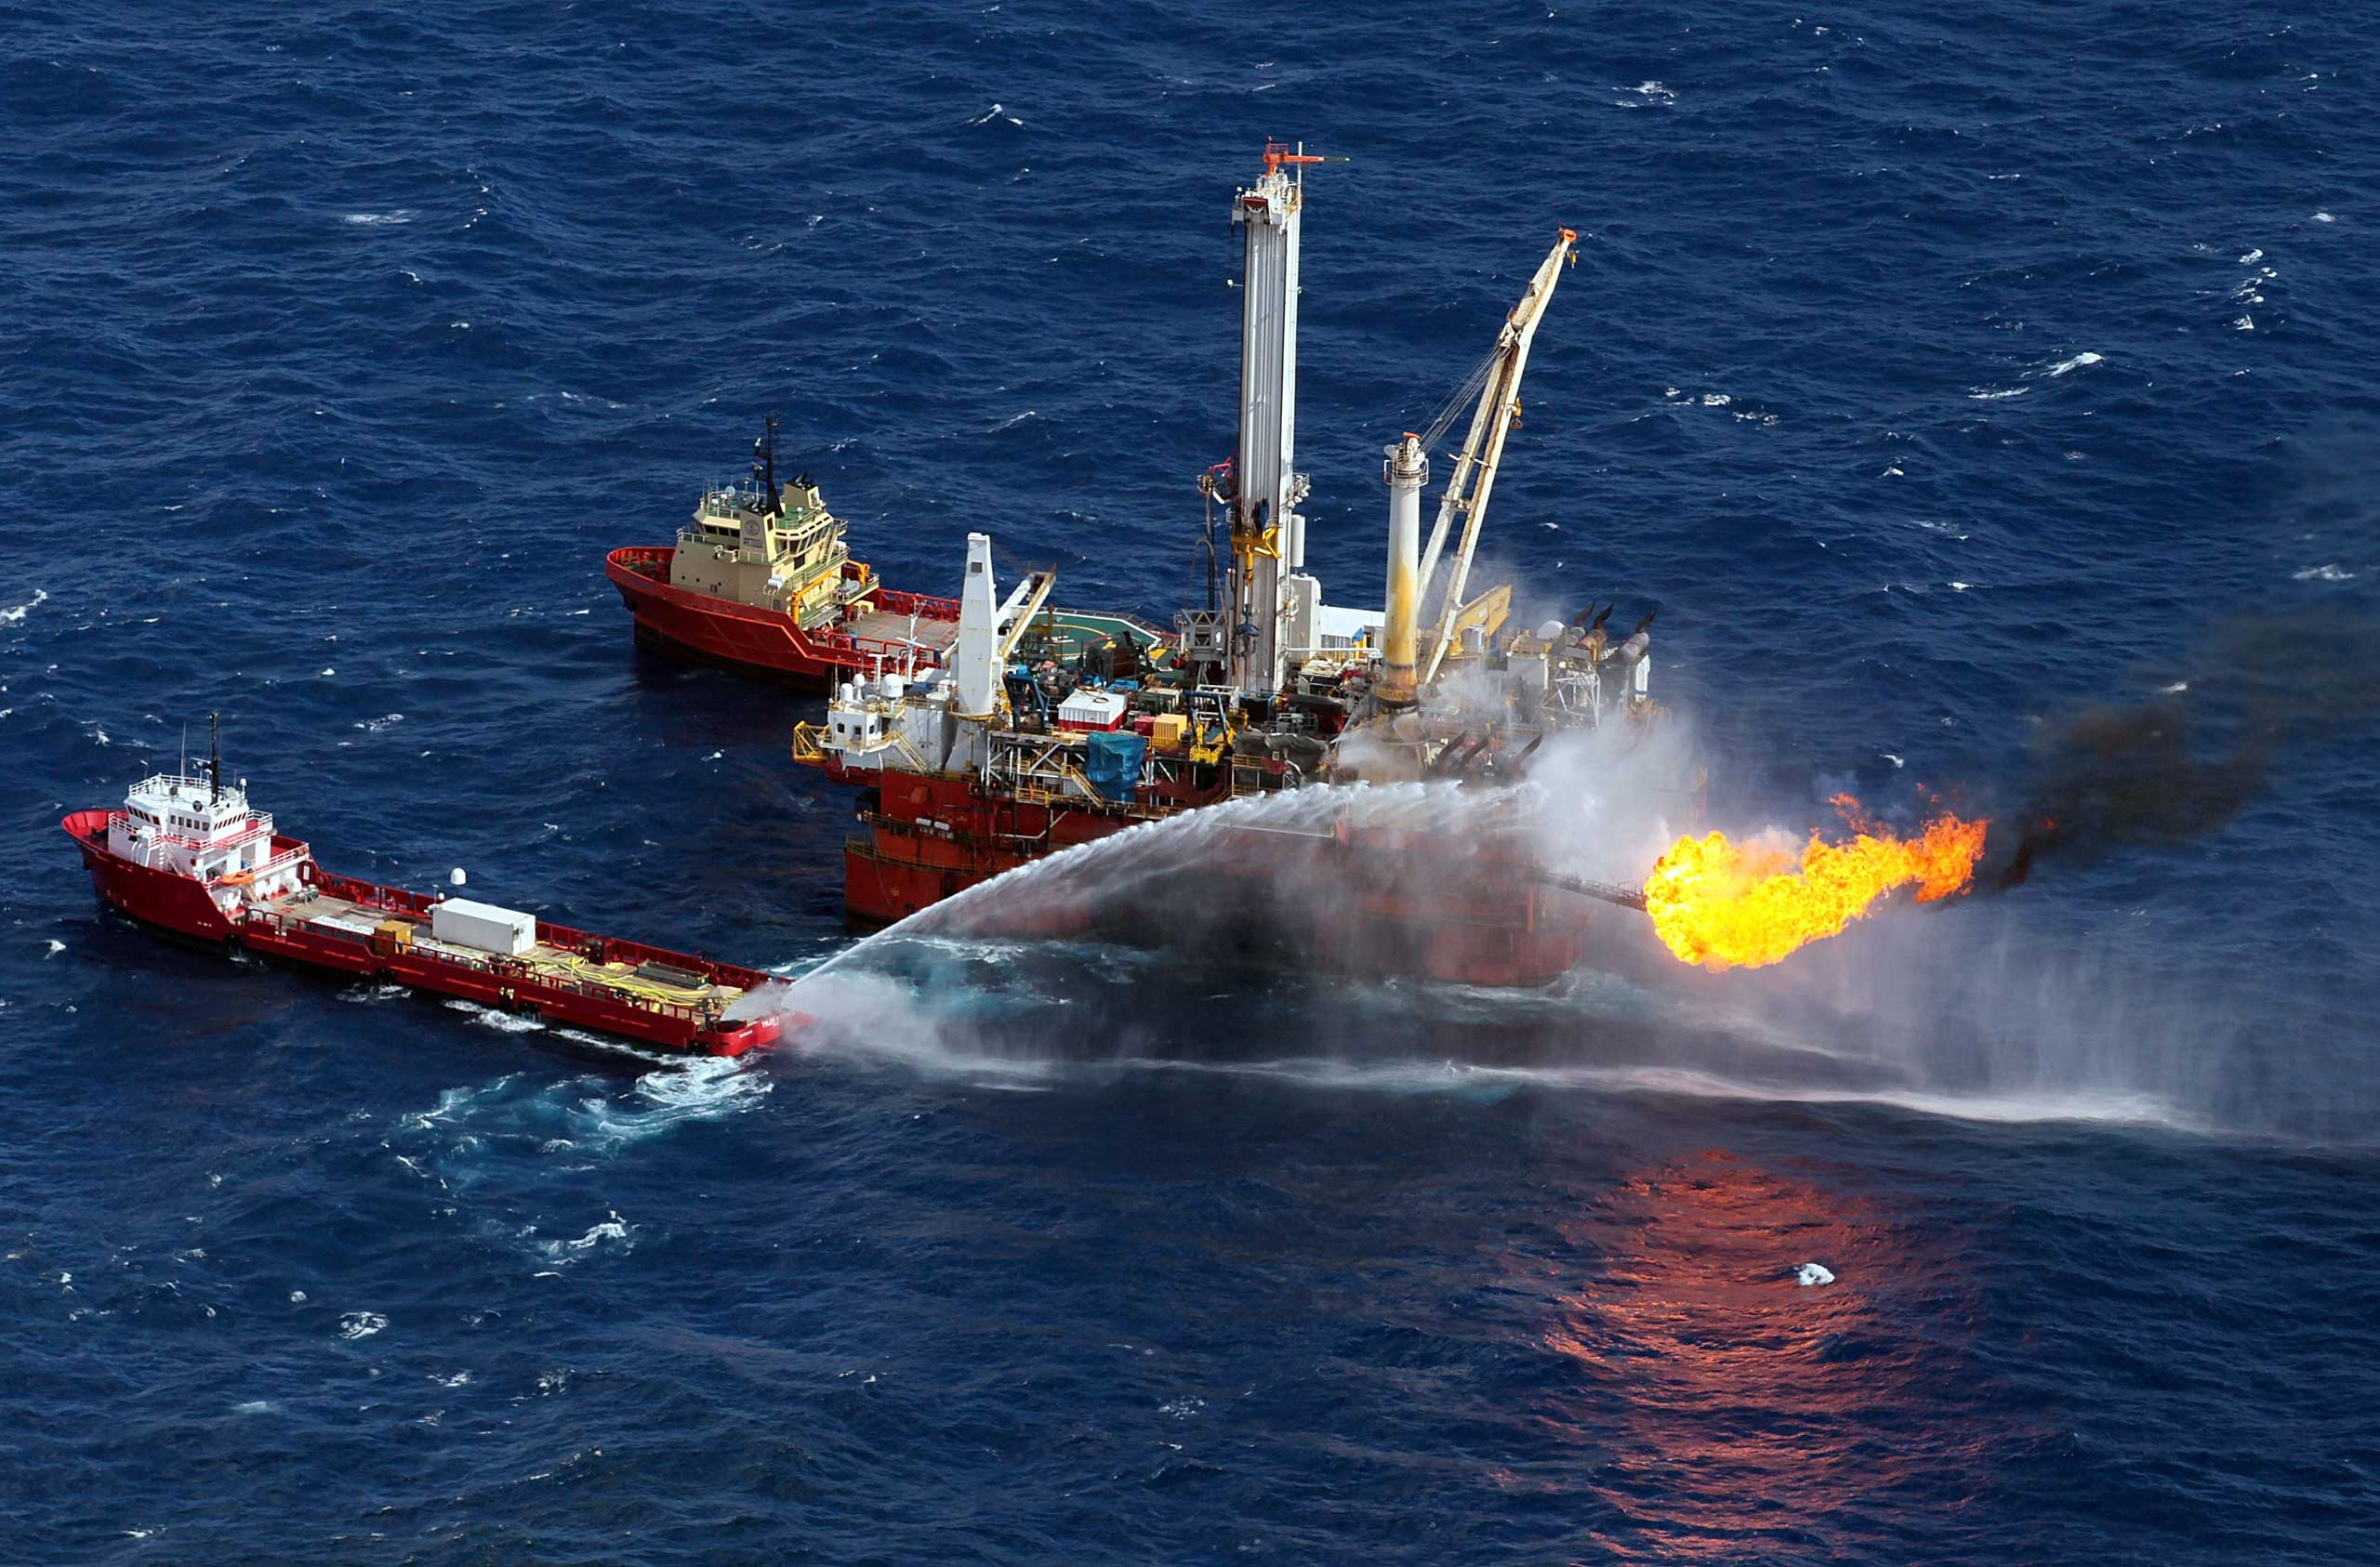 Support ships are seen near where efforts continue to recover oil and cap the Deepwater Horizon spill site in the Gulf of Mexico off the coast of Louisiana on July 3, 2010.